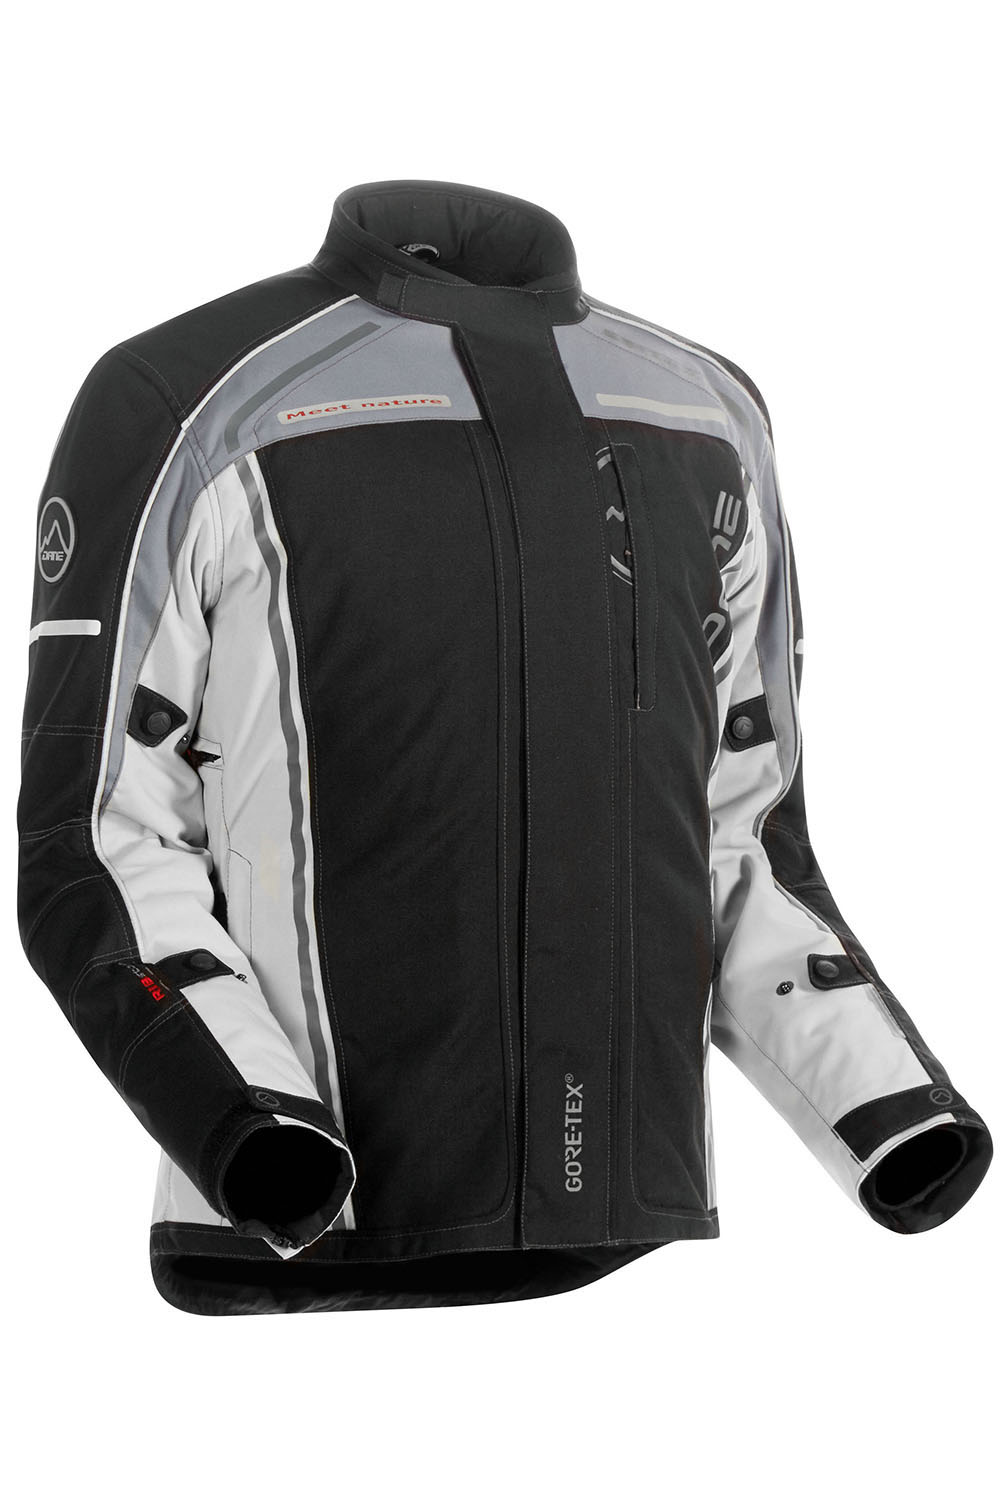 dane tornby gore tex motorradjacke im motoport onlineshop. Black Bedroom Furniture Sets. Home Design Ideas